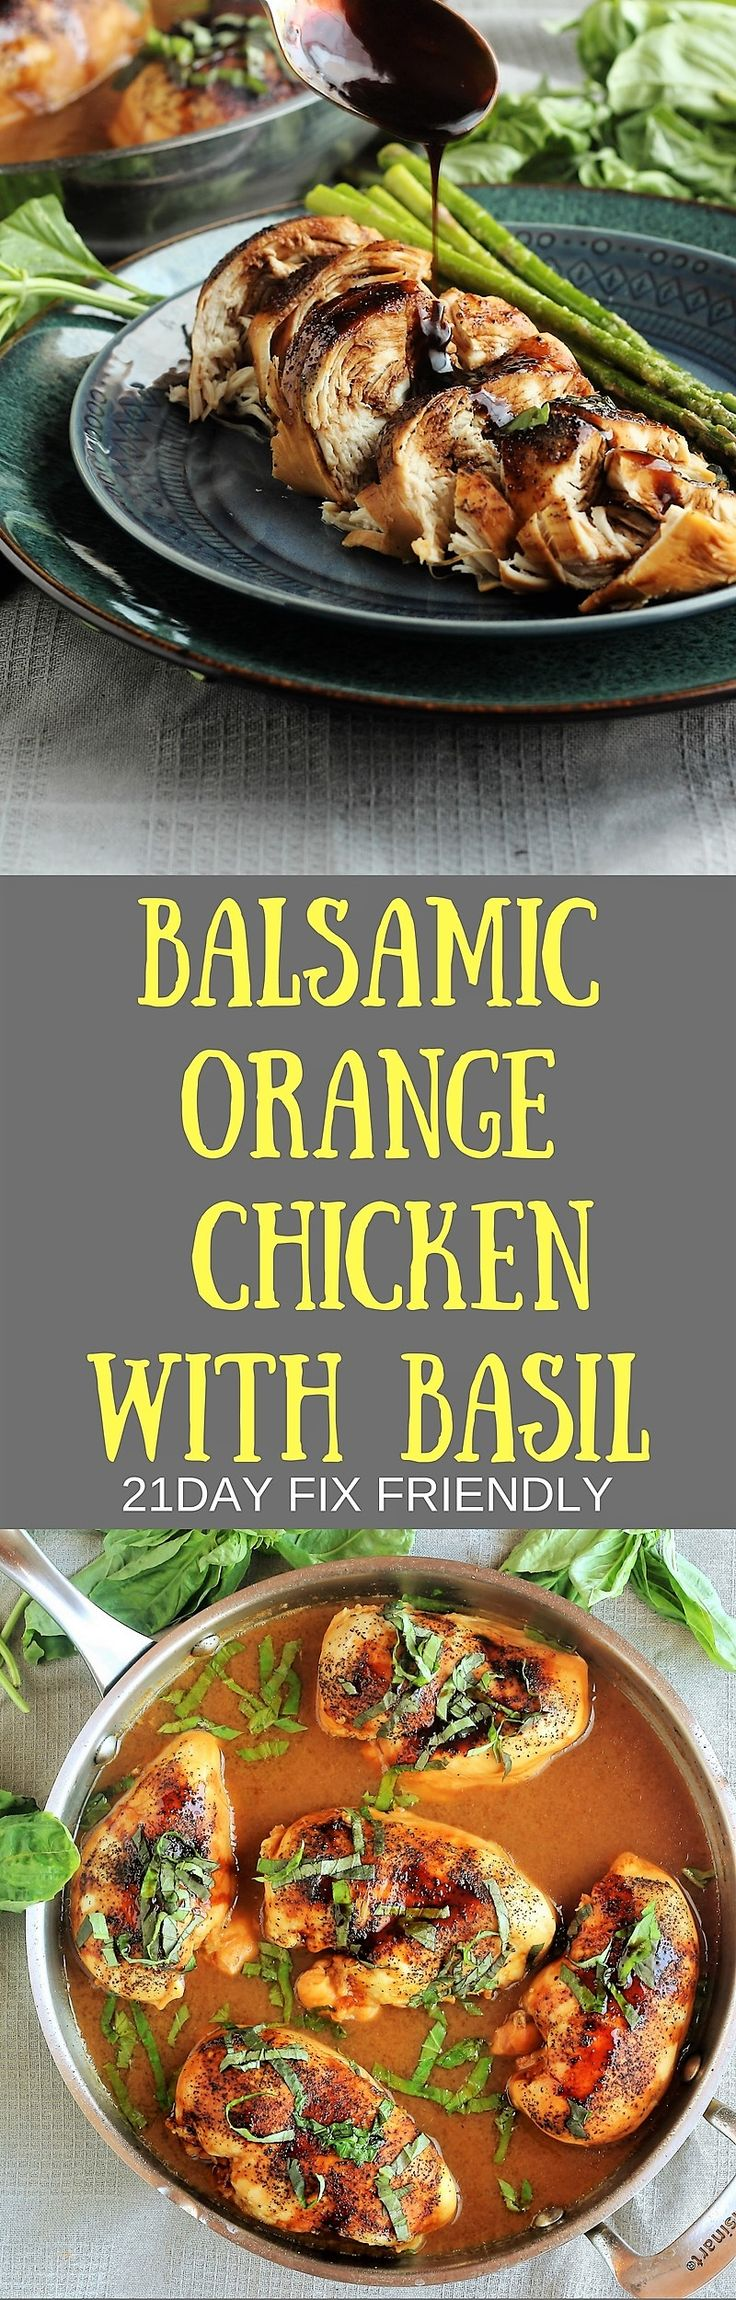 The best chicken recipes - balsamic orange chicken with basil. Crafted to comply with the fix, garlic brined chicken is 4 ingredients and absolutely delicious!